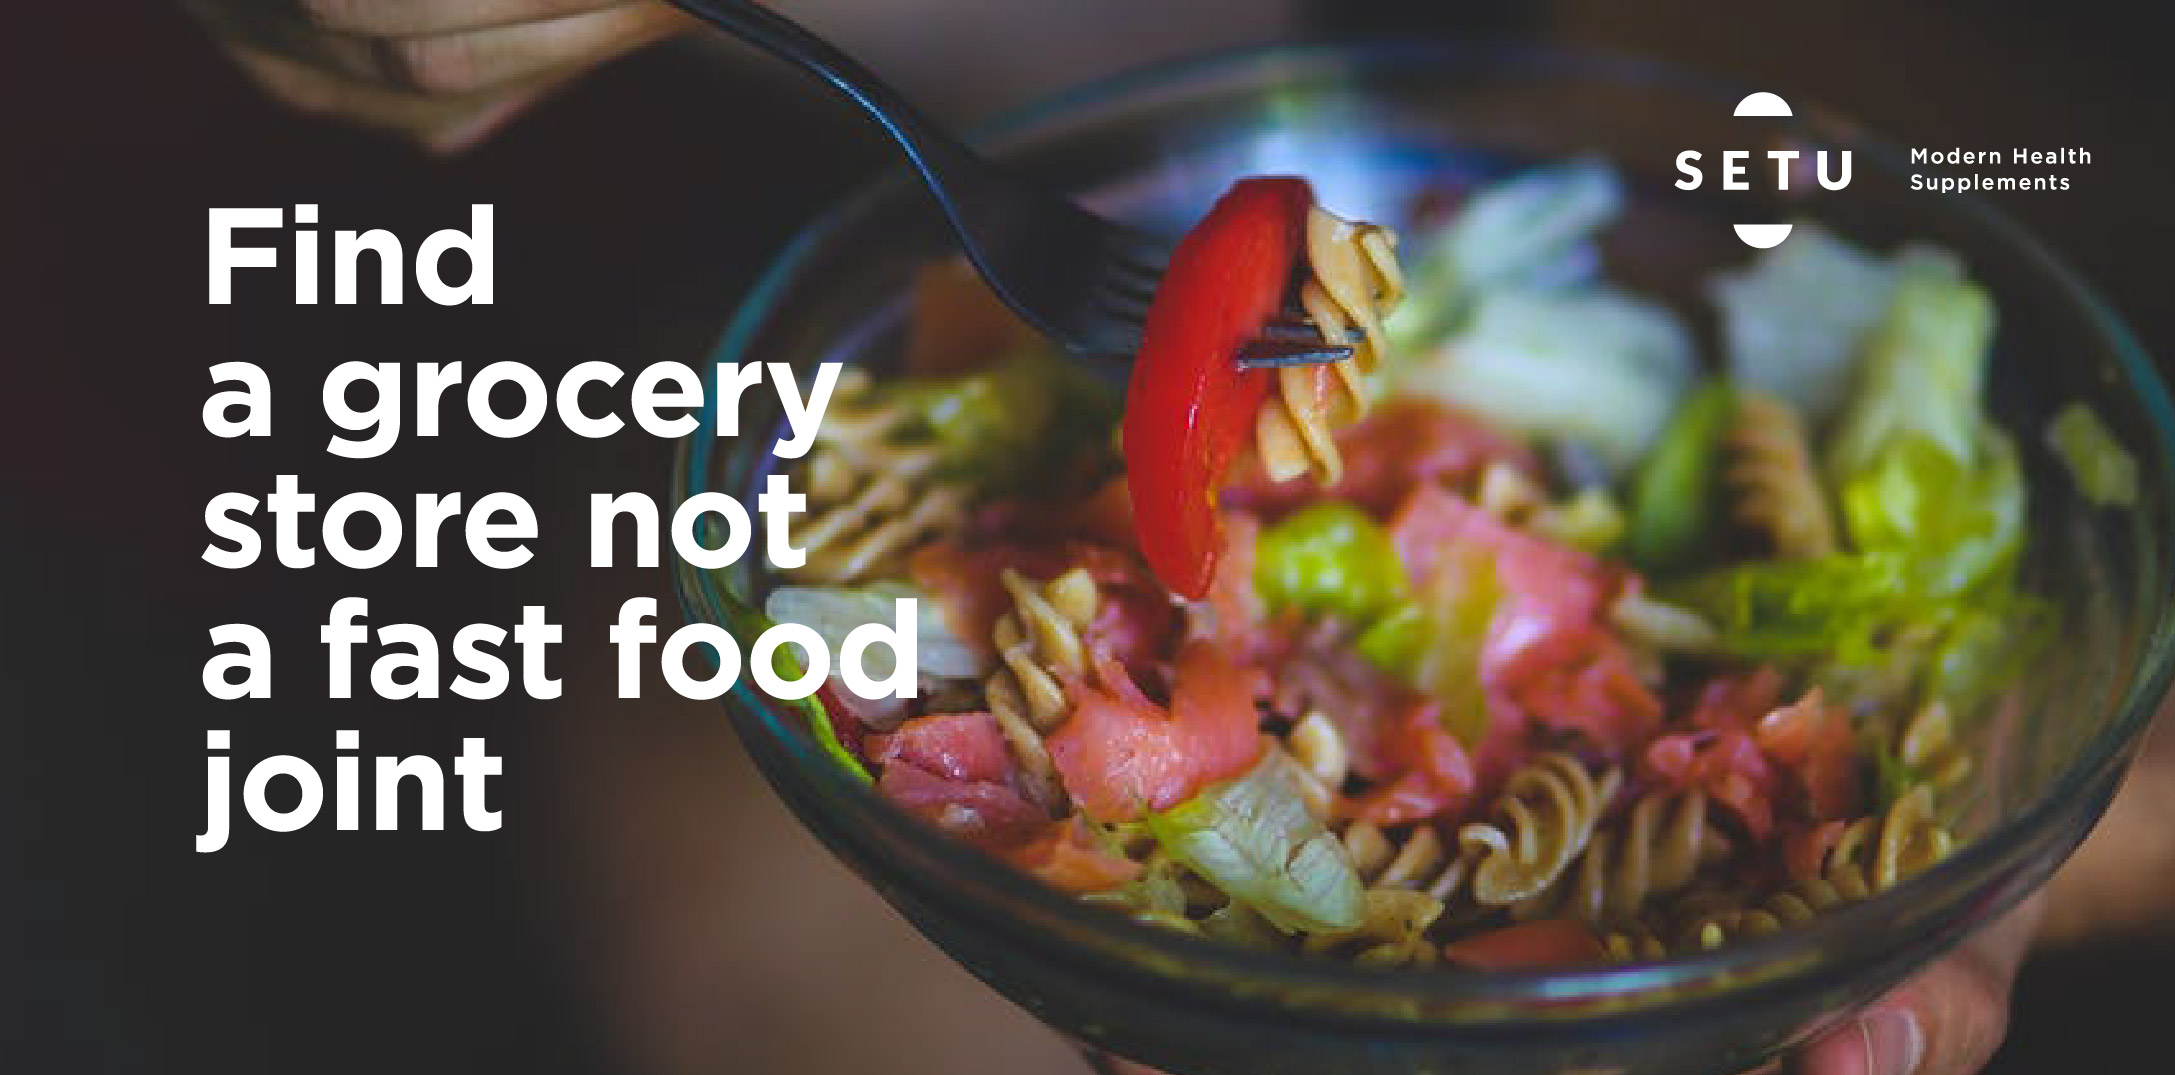 Find a grocery store not a fast food joint